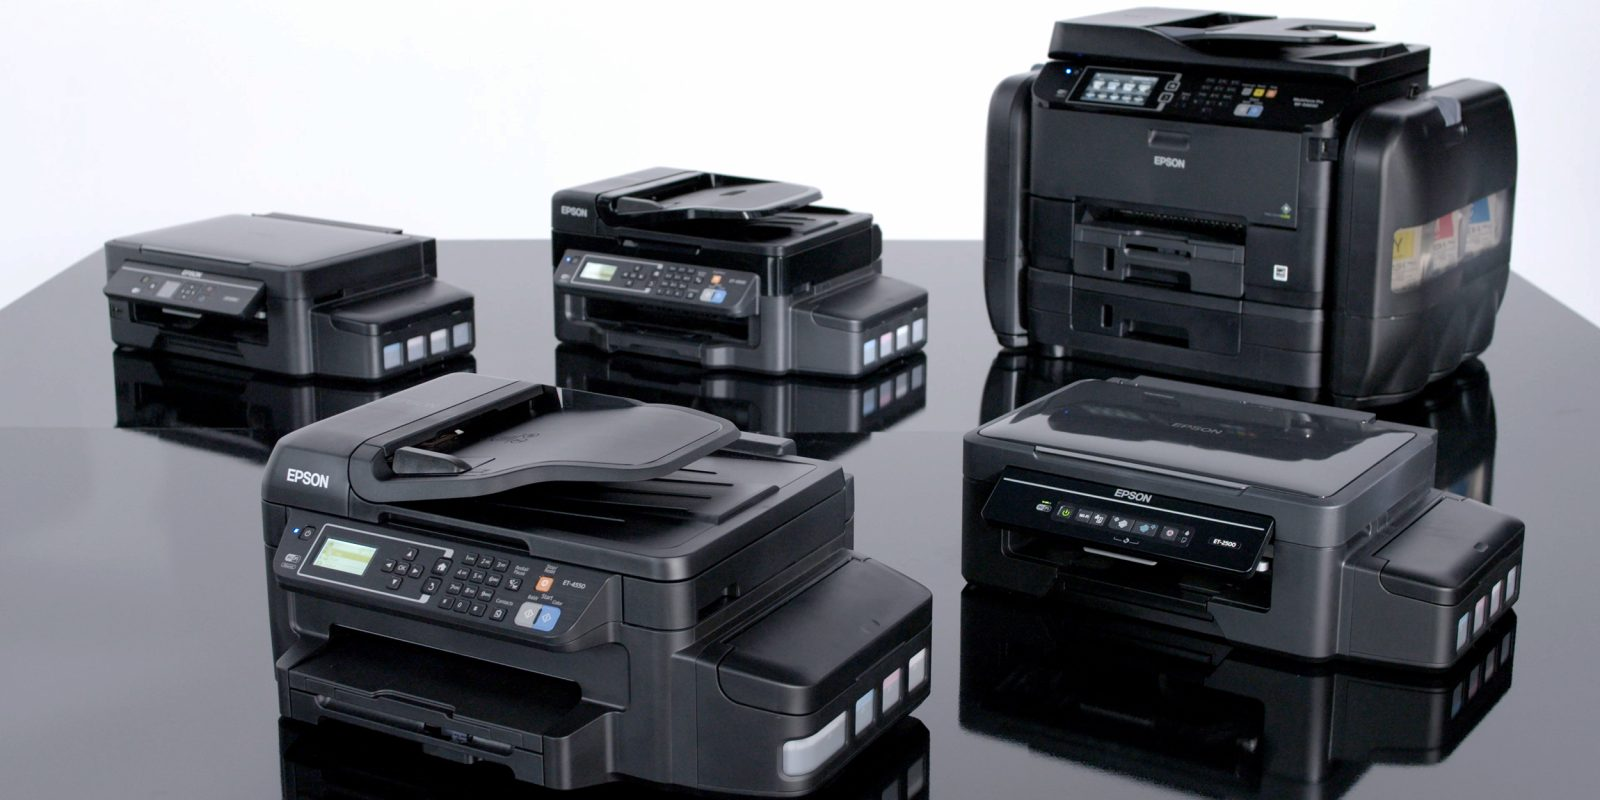 Epson's new EcoTank printers have enough ink for